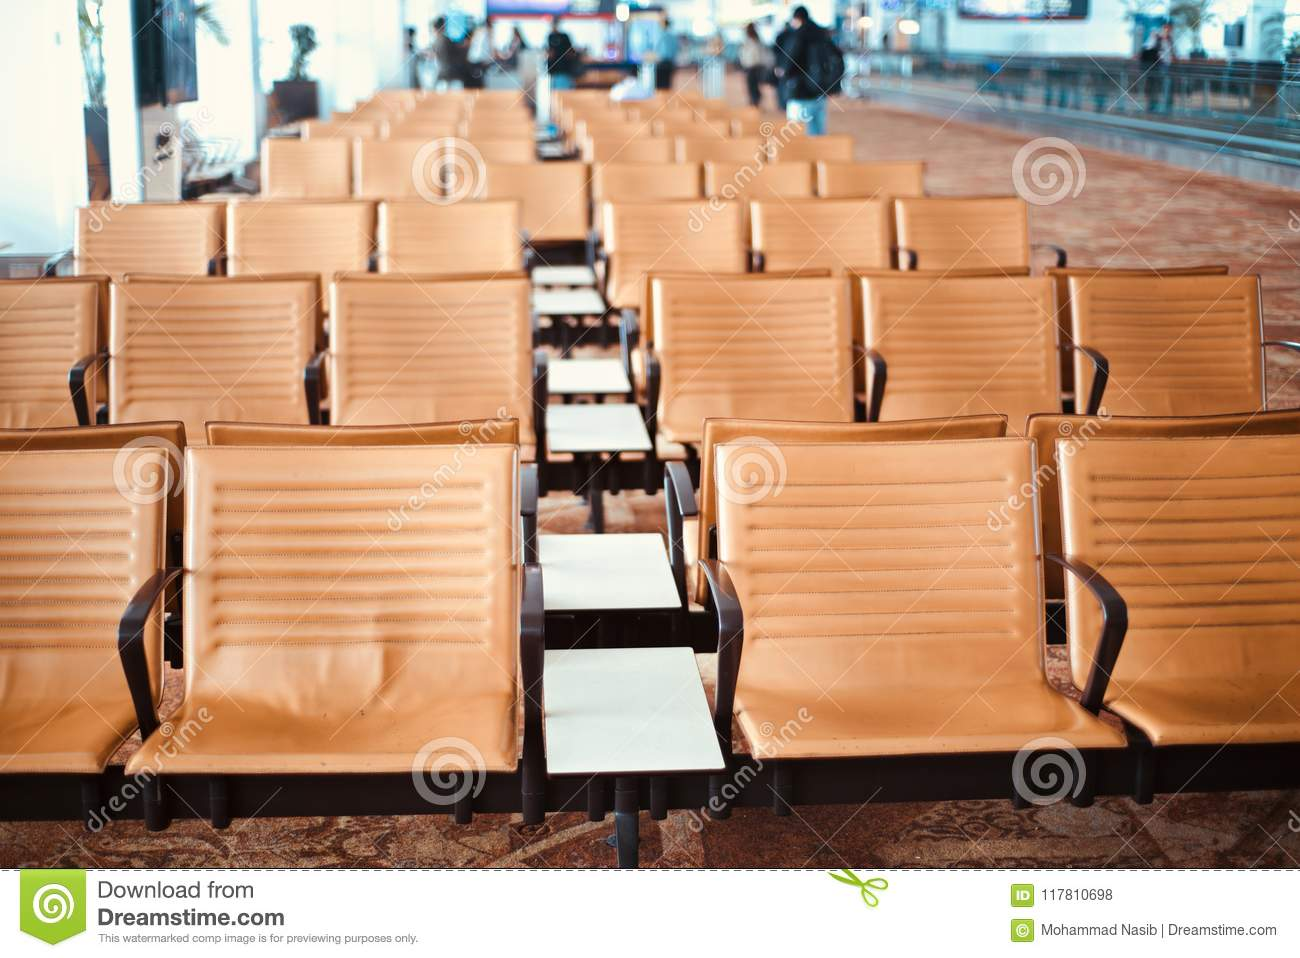 Download Stylish Metallic Chairs Of An Airport  Unique Photo Stock Photo - Image of banner, chairs: 117810698